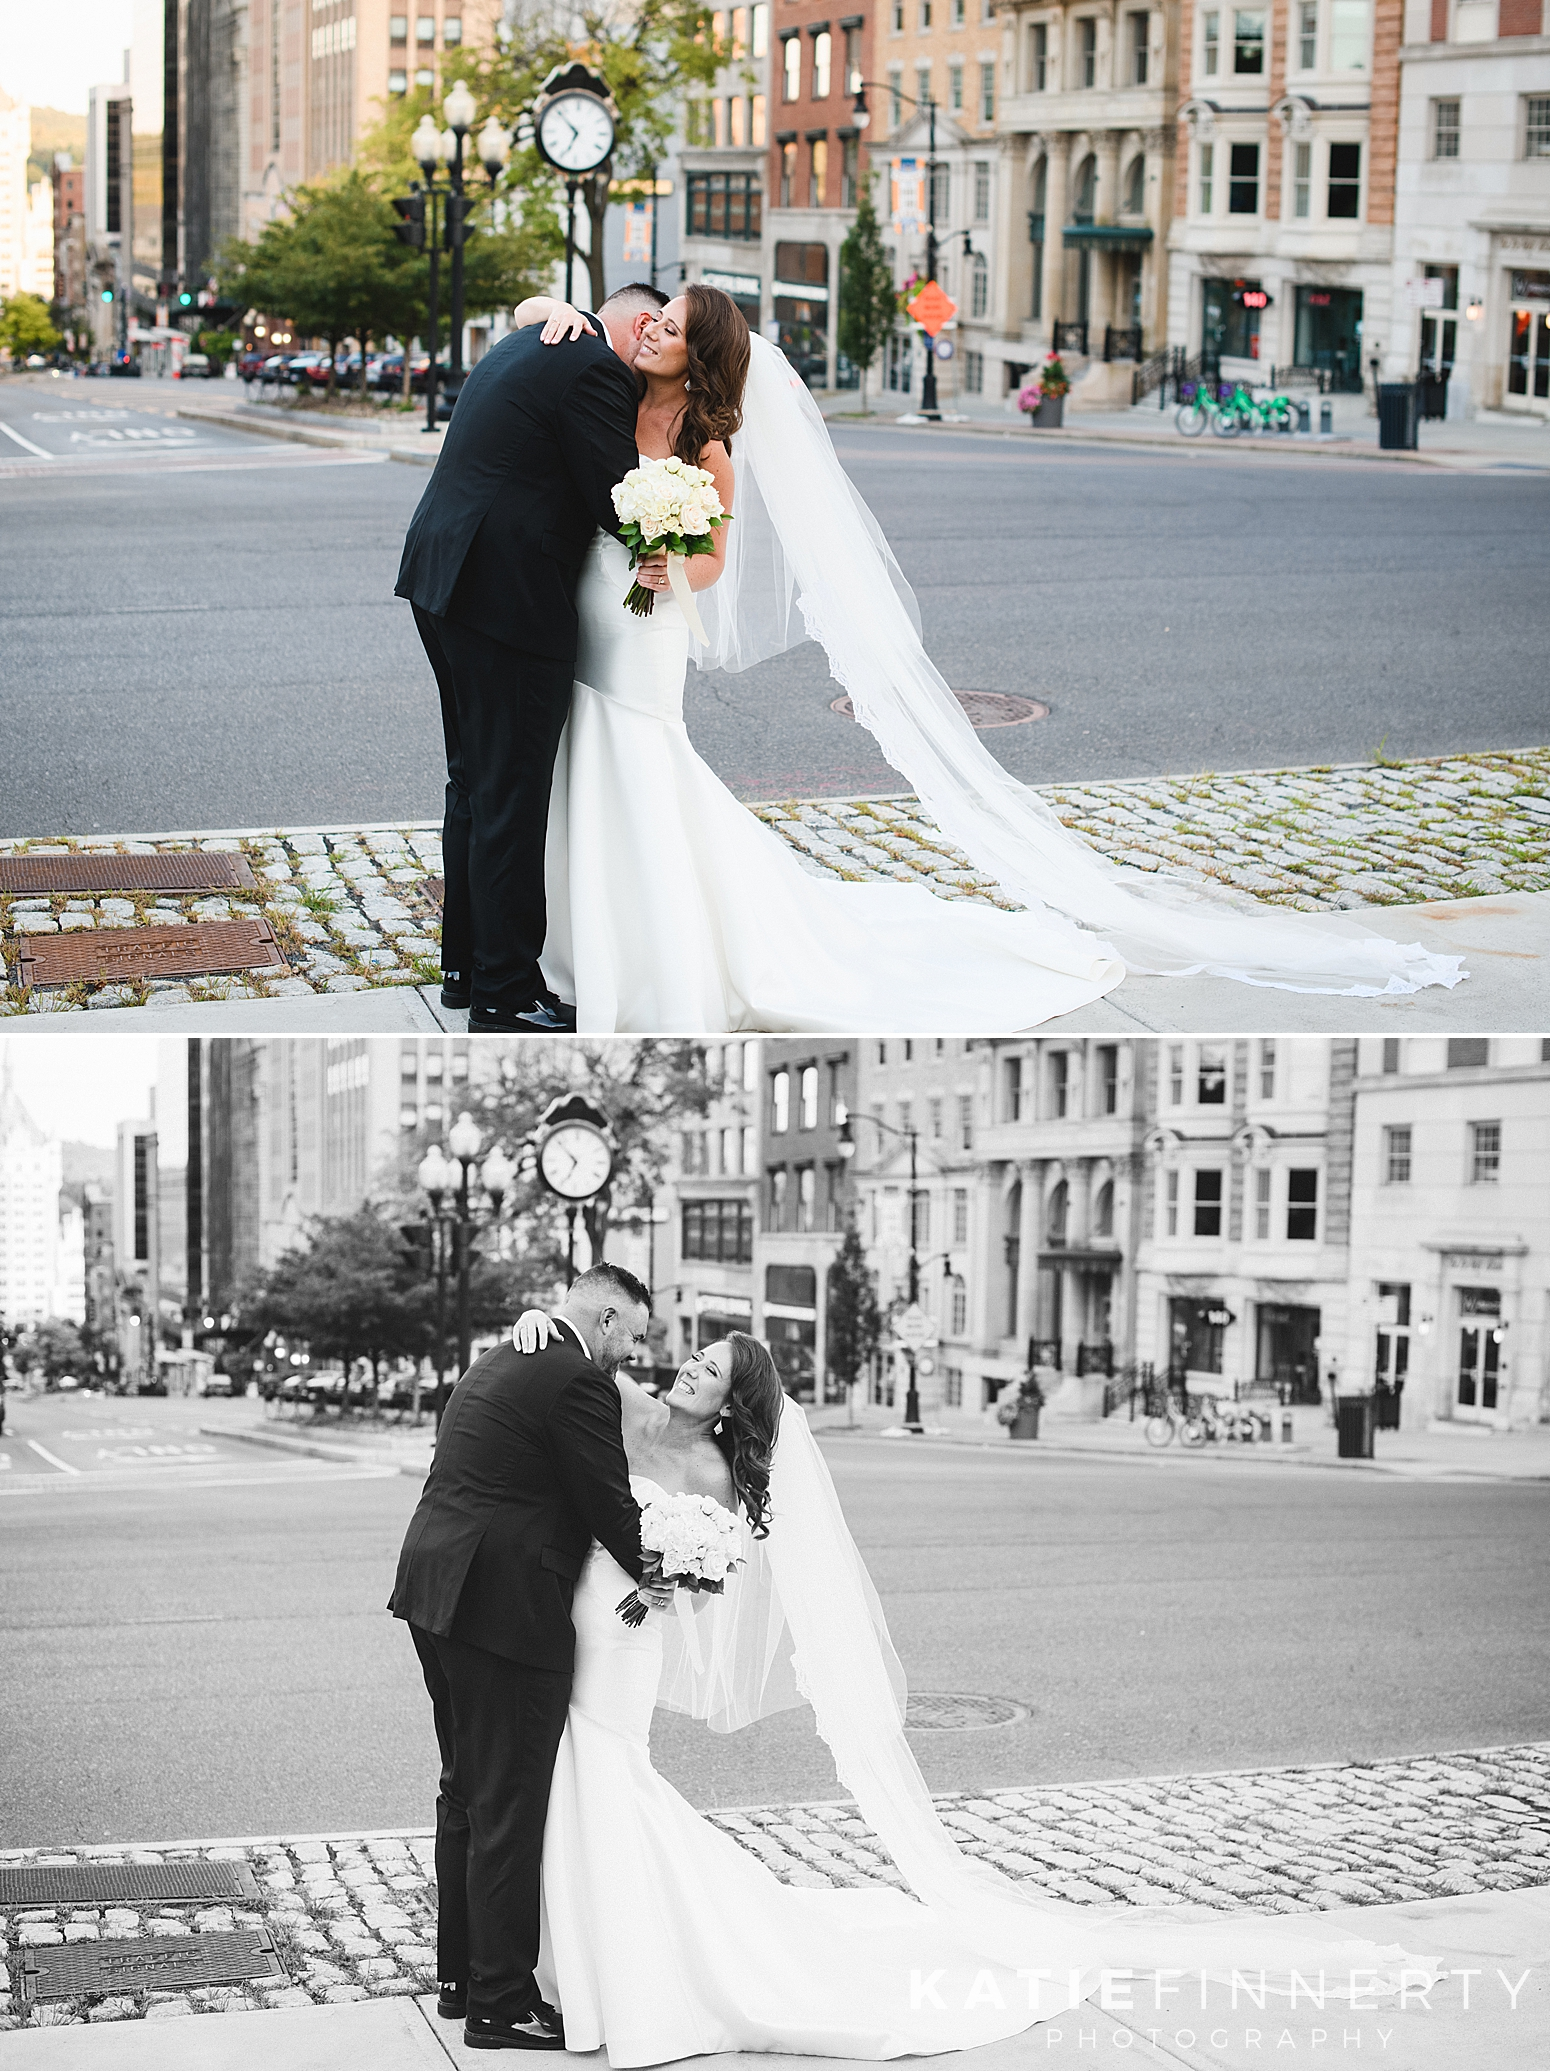 90 State Events Downtown Albany Wedding Photography